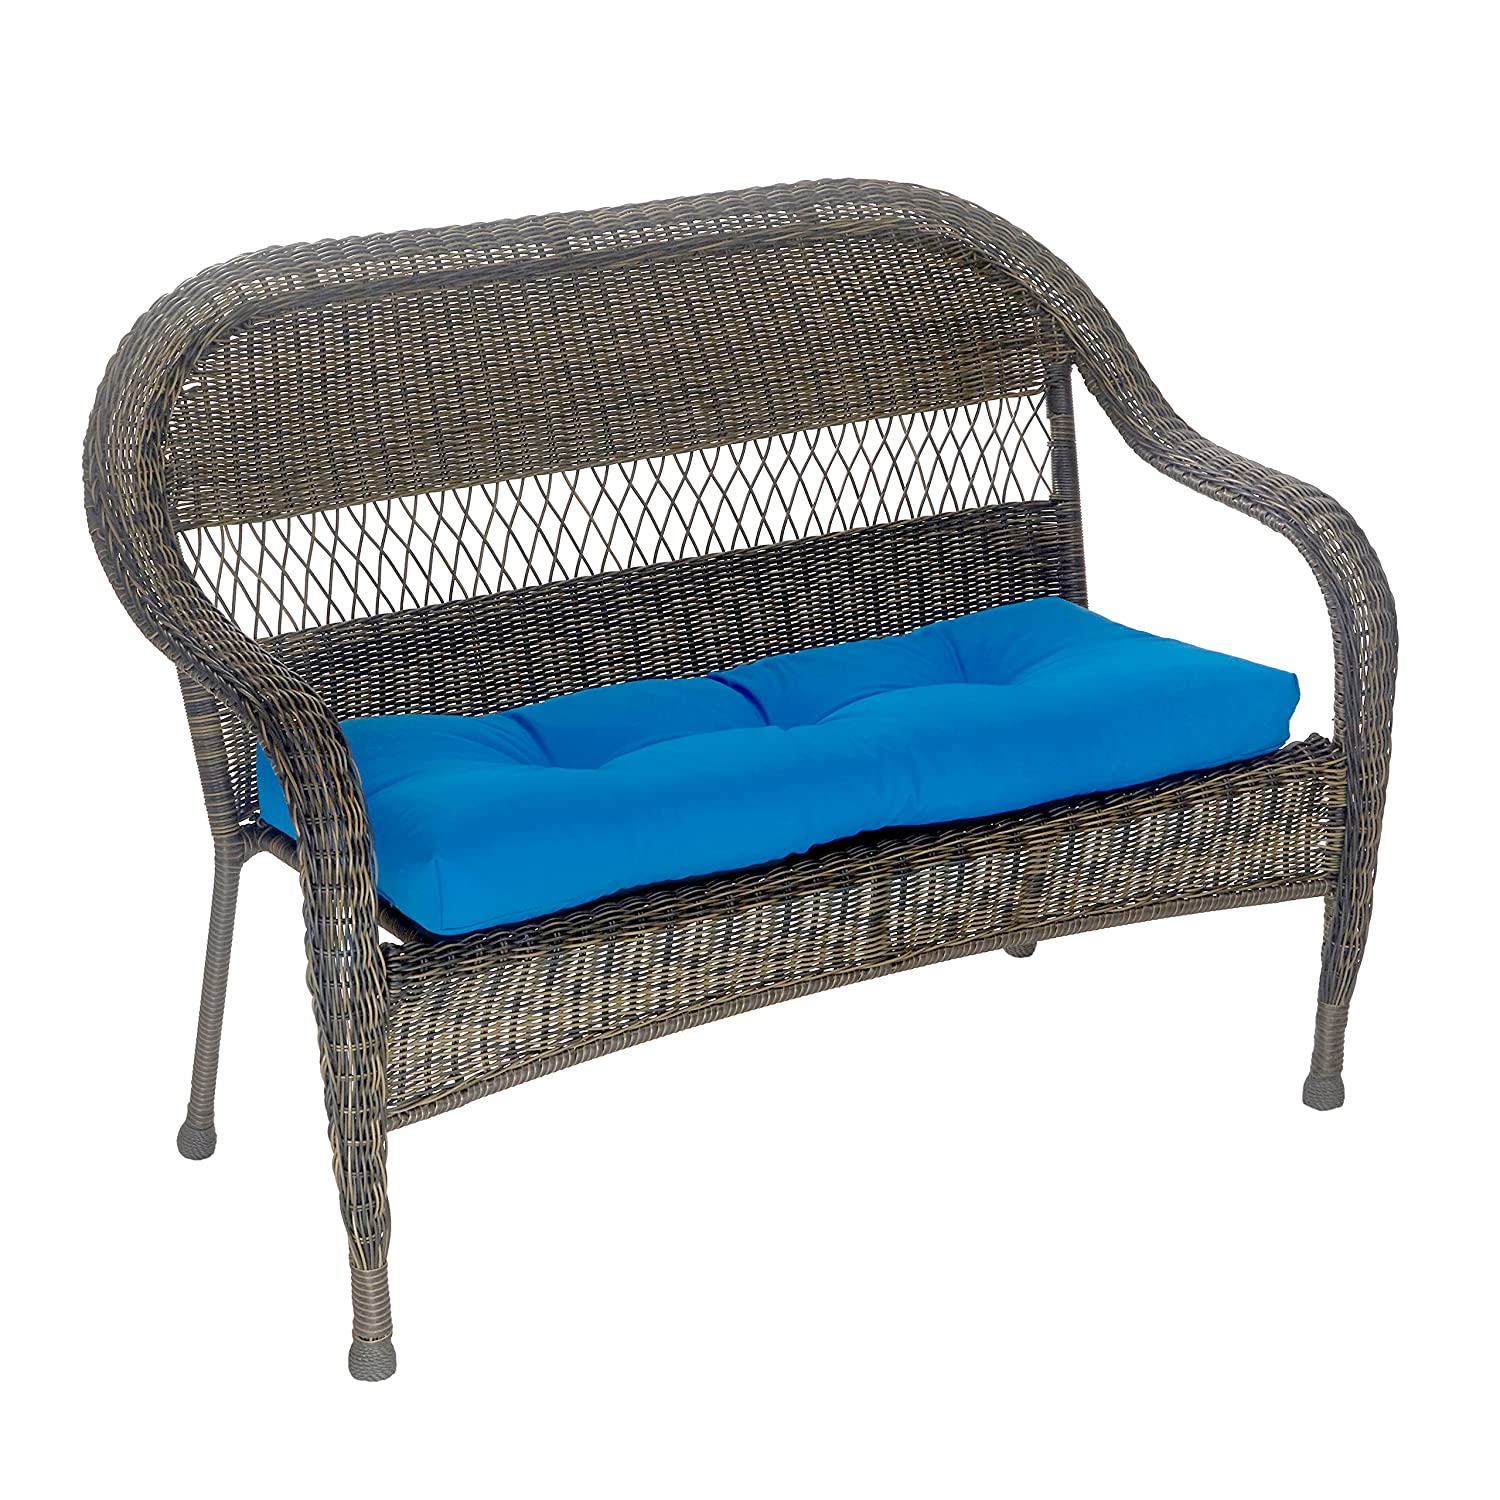 Amazon.com : Outdoor Patio Bench Cushion - Solid and Patterns - 43 x ...